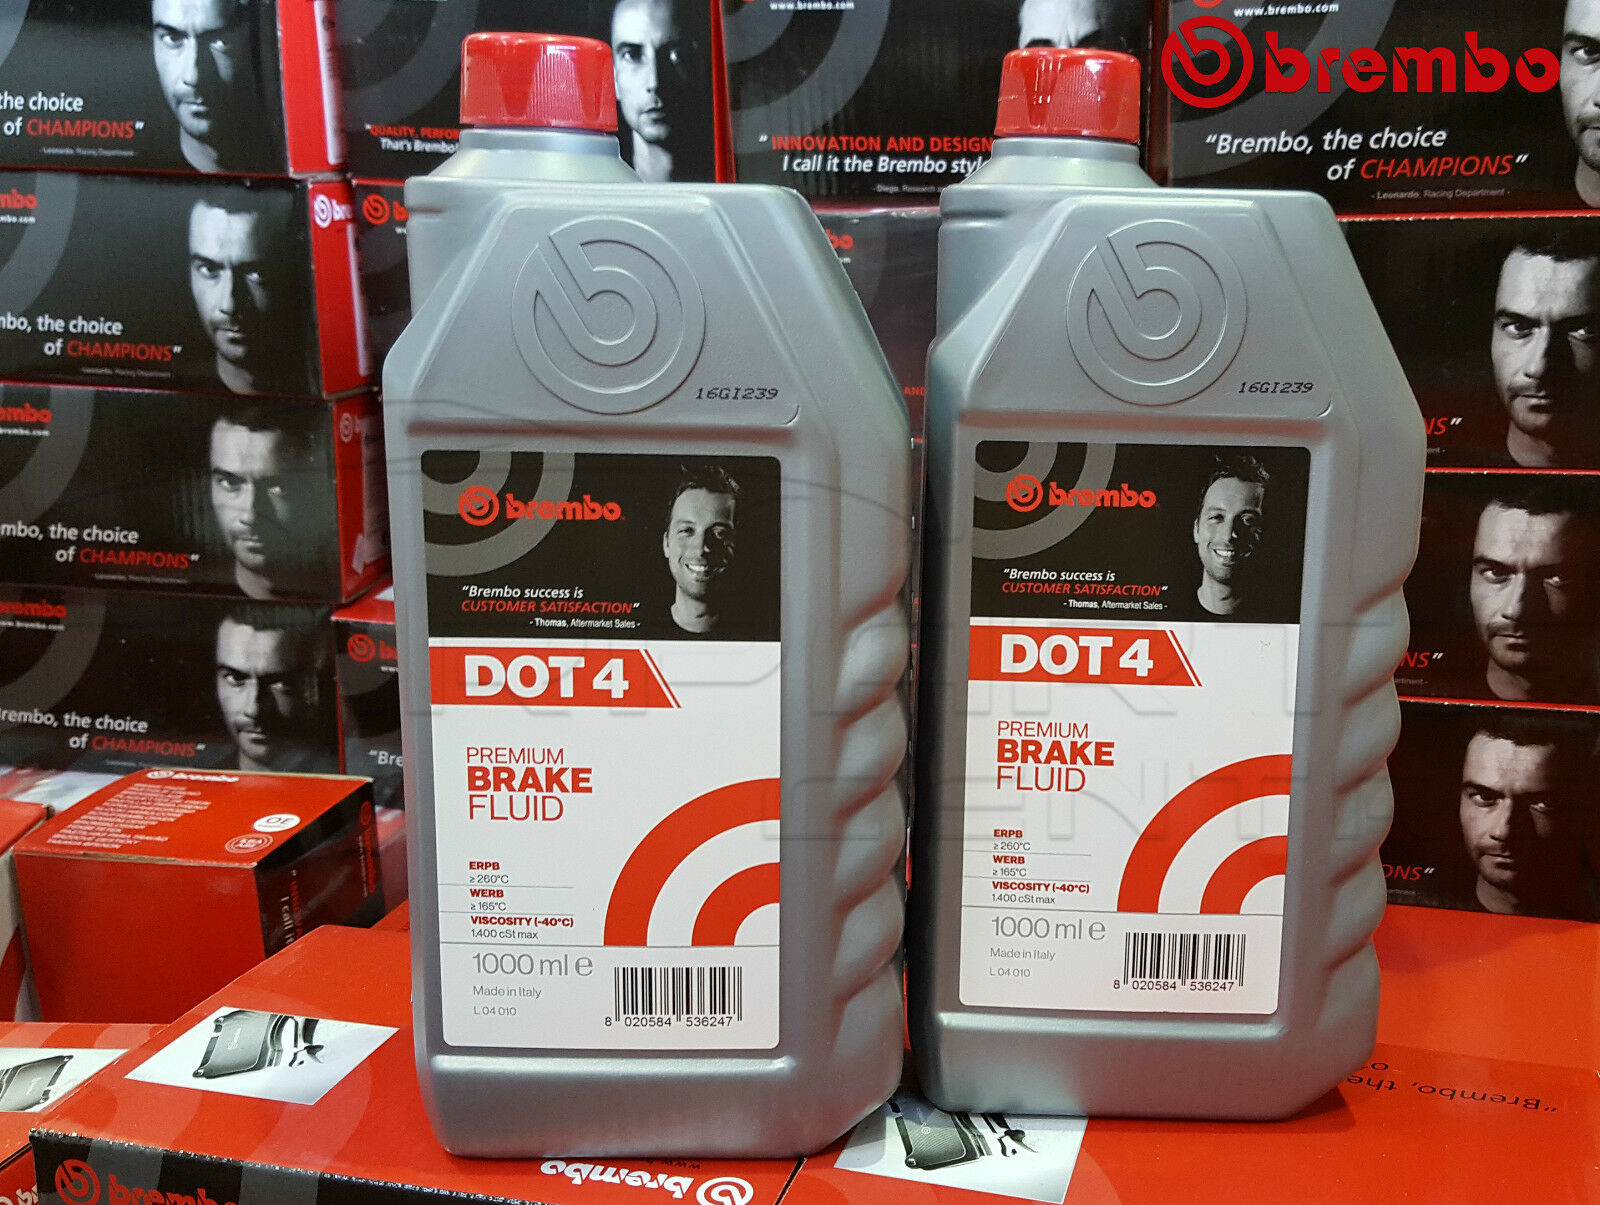 Details about BREMBO PREMIUM FULLY SYNTHETIC BRAKE And CLUTCH FLUID Dot 4  Dot4 1L 2L 1 2 Litre